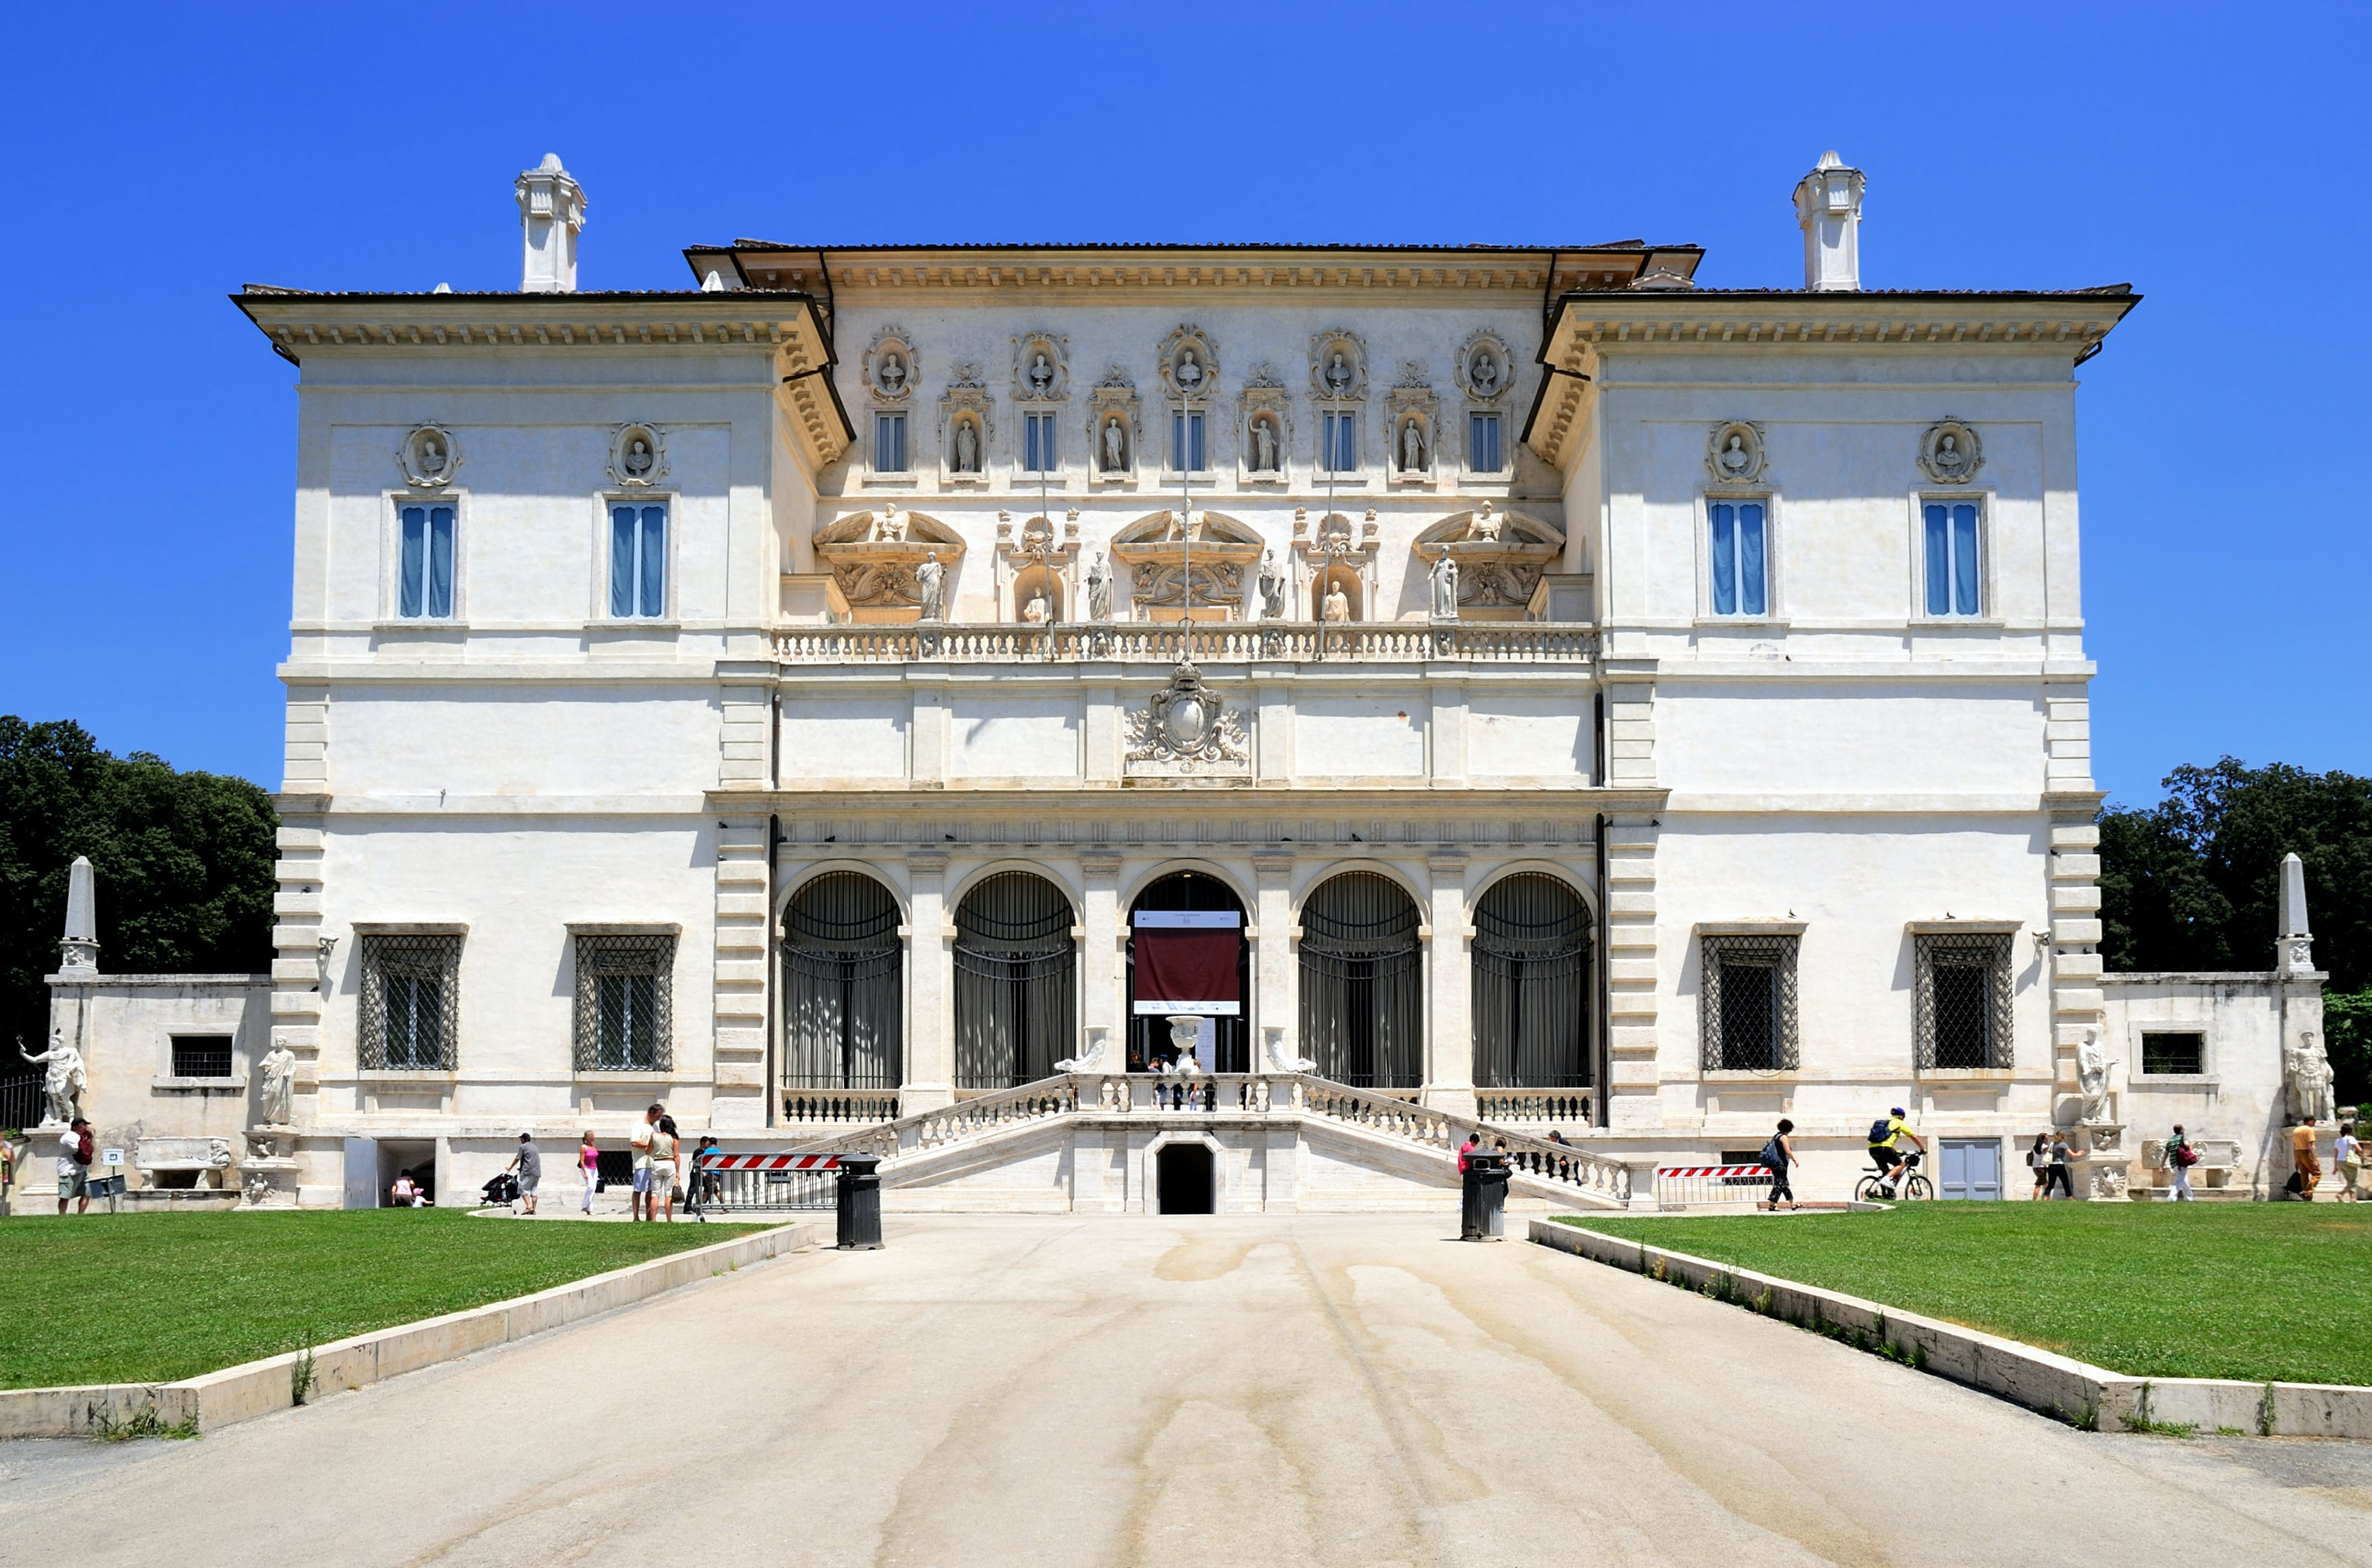 Skip-the-line tickets and guided visit for the Borghese Gallery